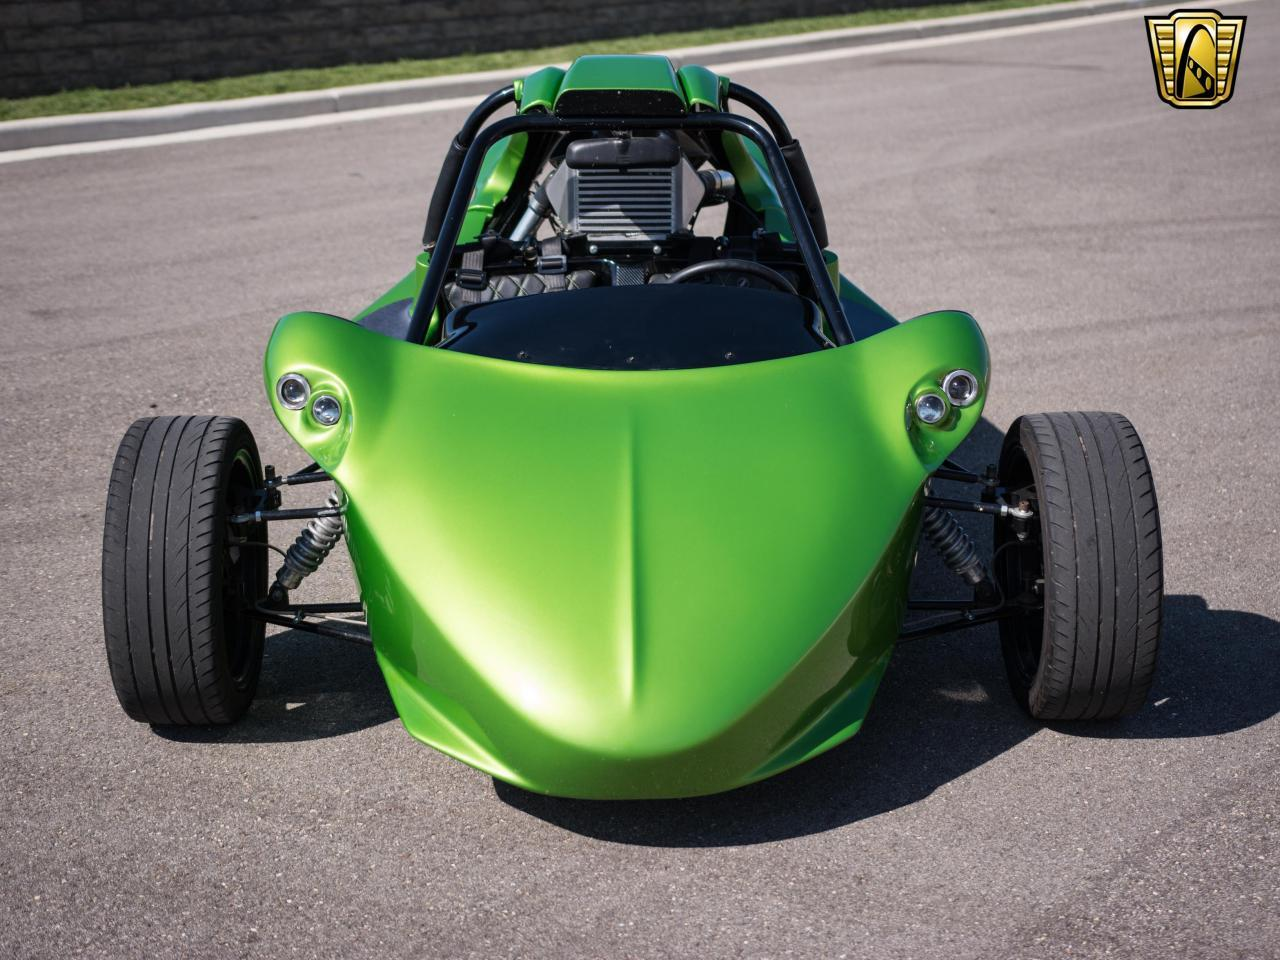 Large Picture of '08 Kawasaki T-Rex Replica located in Wisconsin - $44,595.00 Offered by Gateway Classic Cars - Milwaukee - L7NA